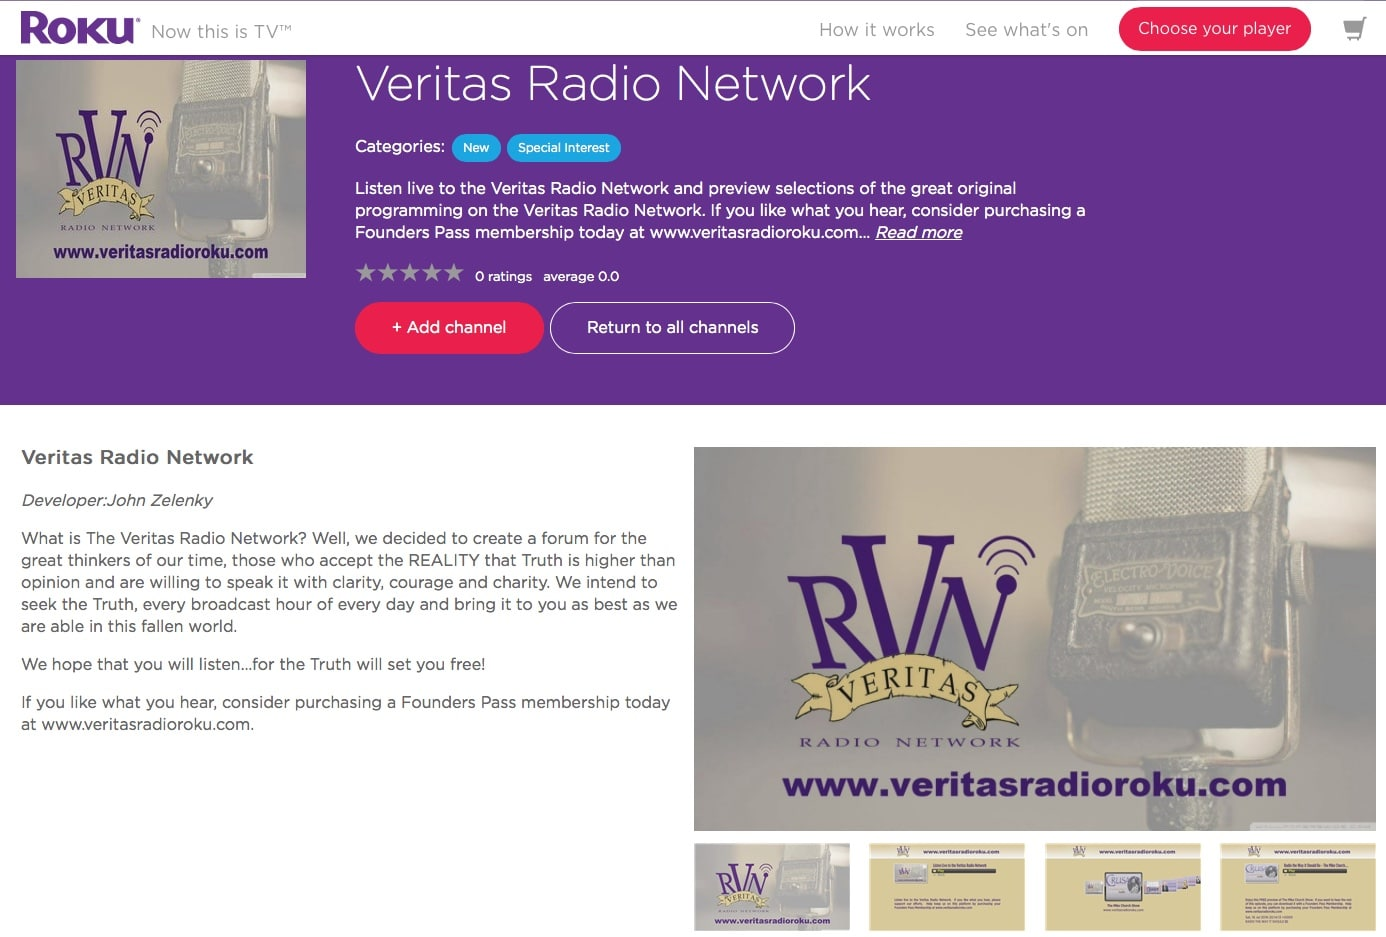 The Veritas Radio Network Is Now On The Roku!